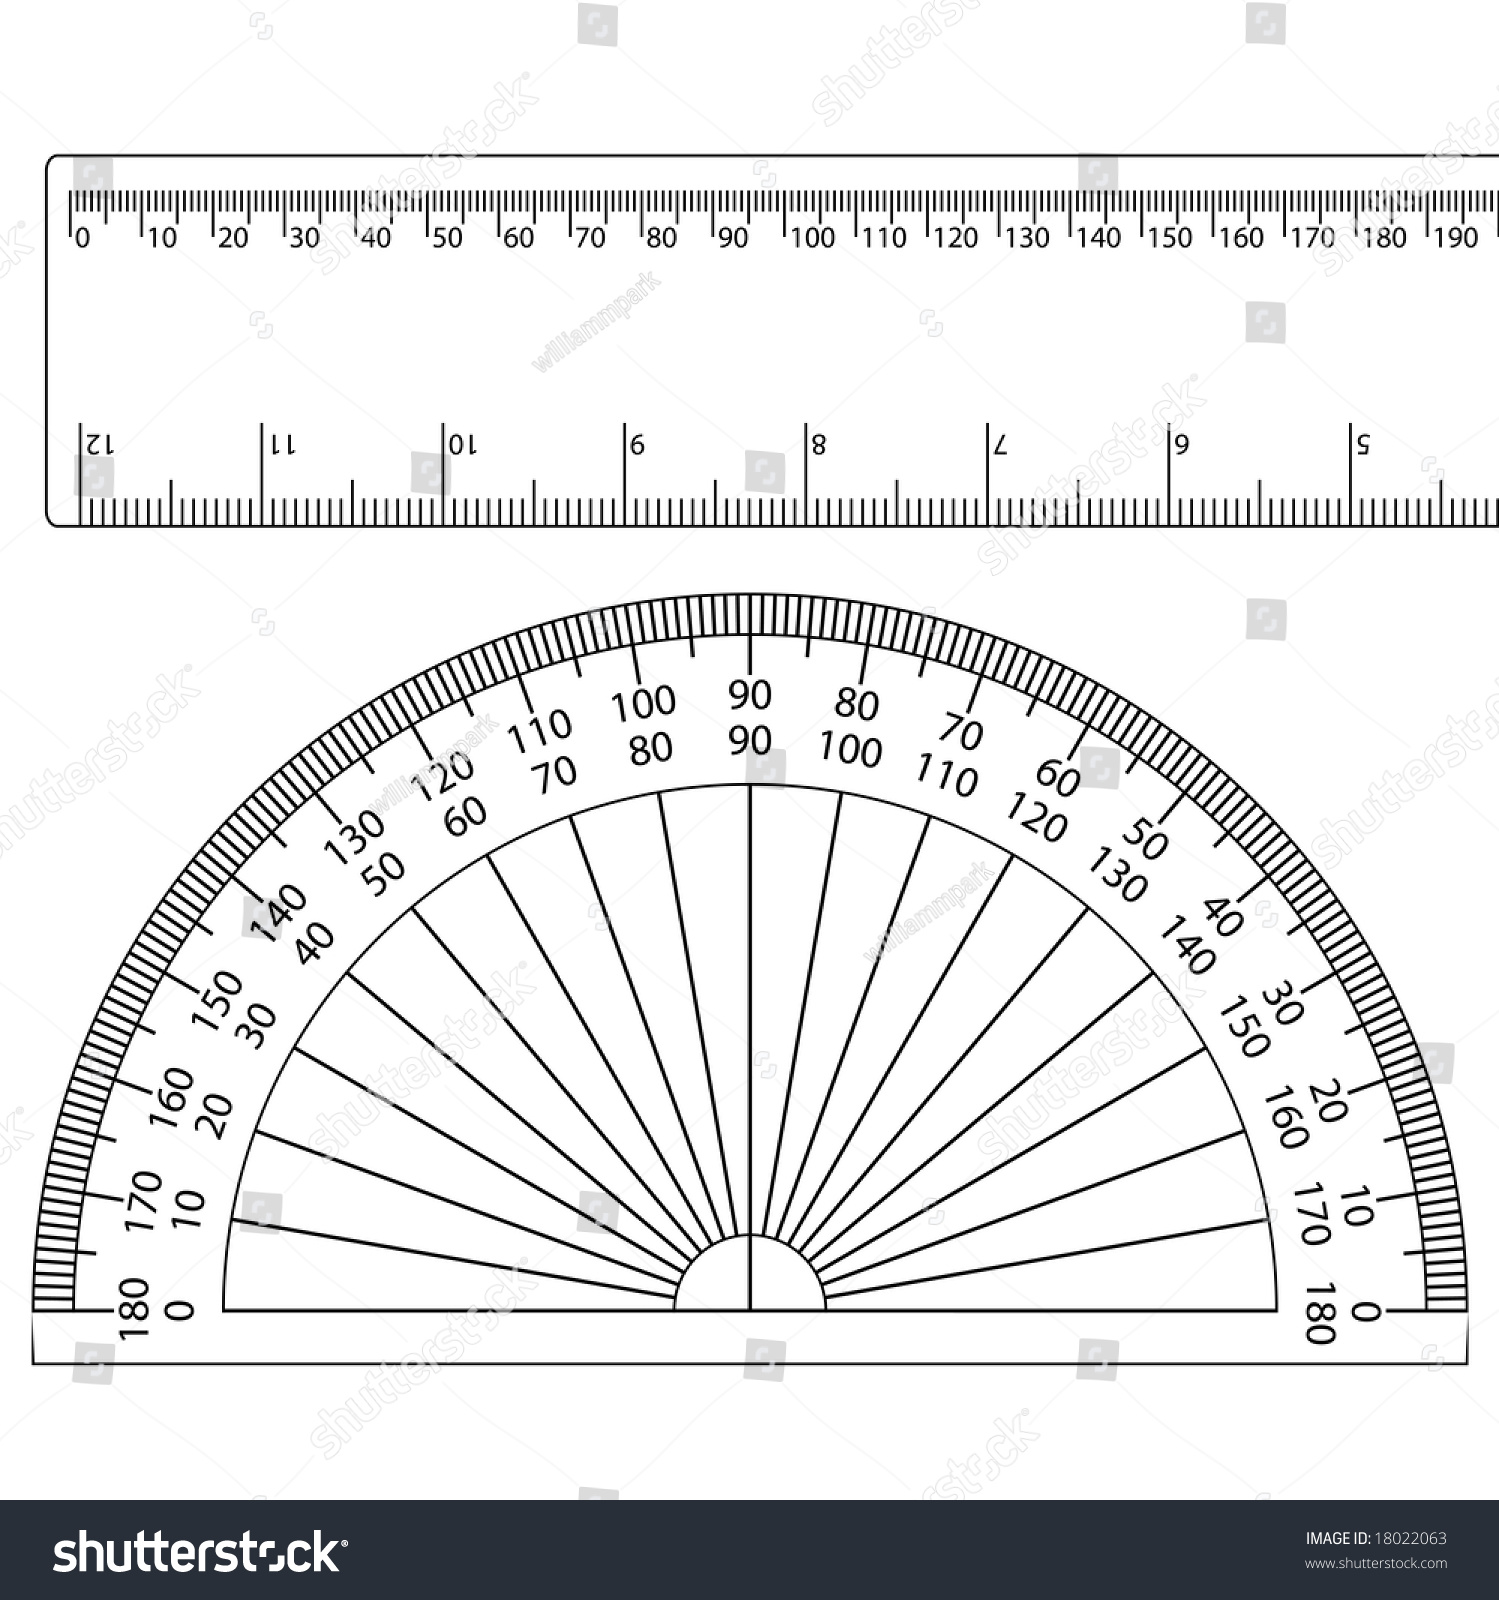 worksheet A Protractor protractor ruler stock vector 18022063 shutterstock a and ruler